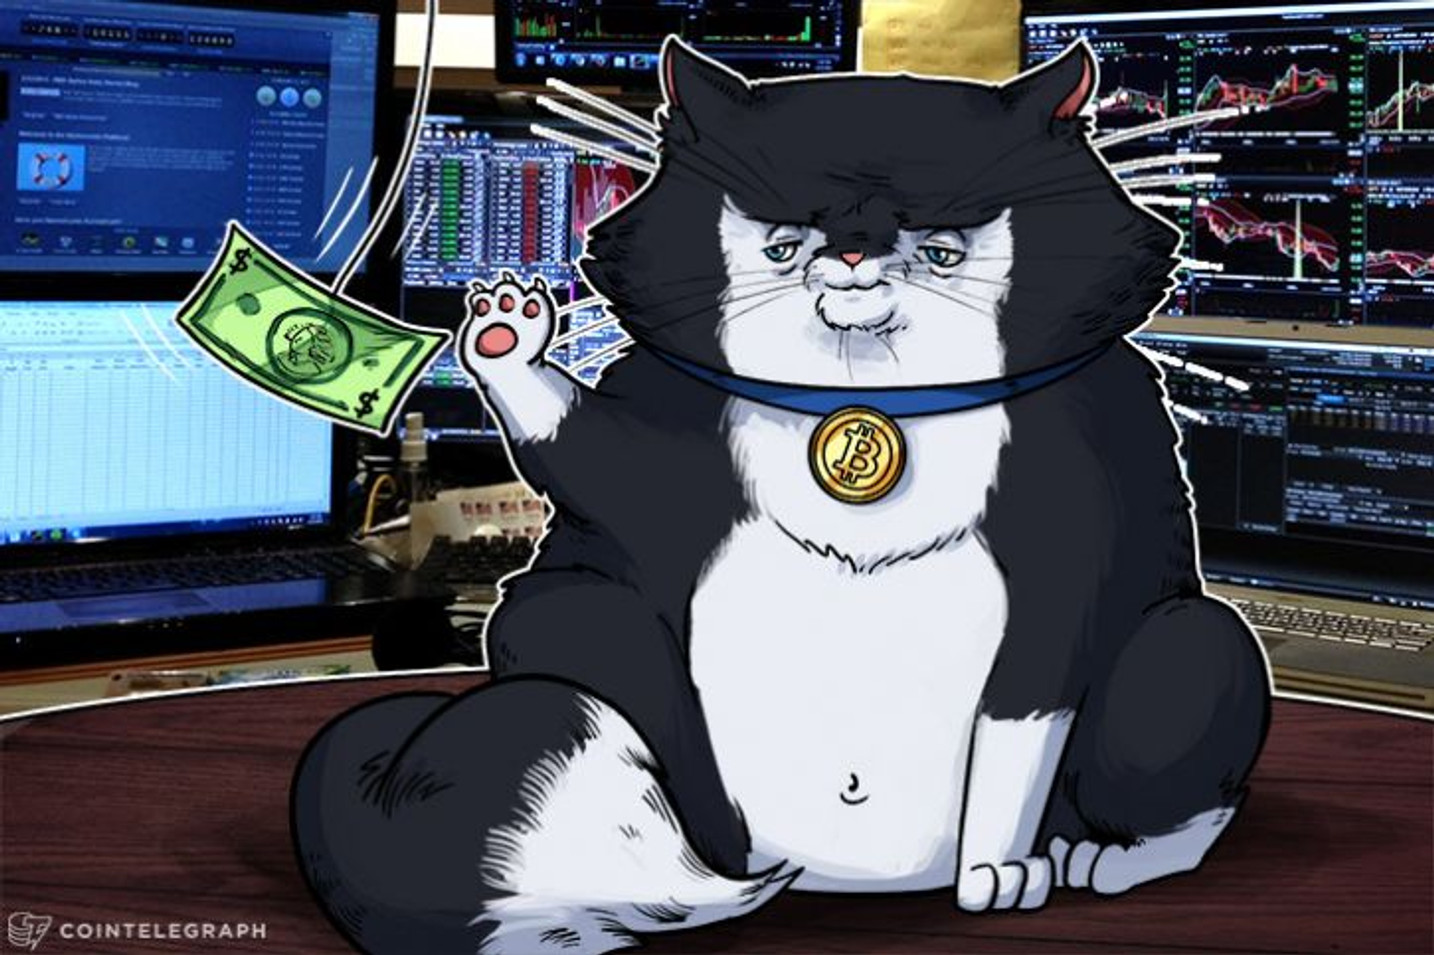 Bear Over There! Analyst Forecasts Perfect Bitcoin Buy Floor at $3000